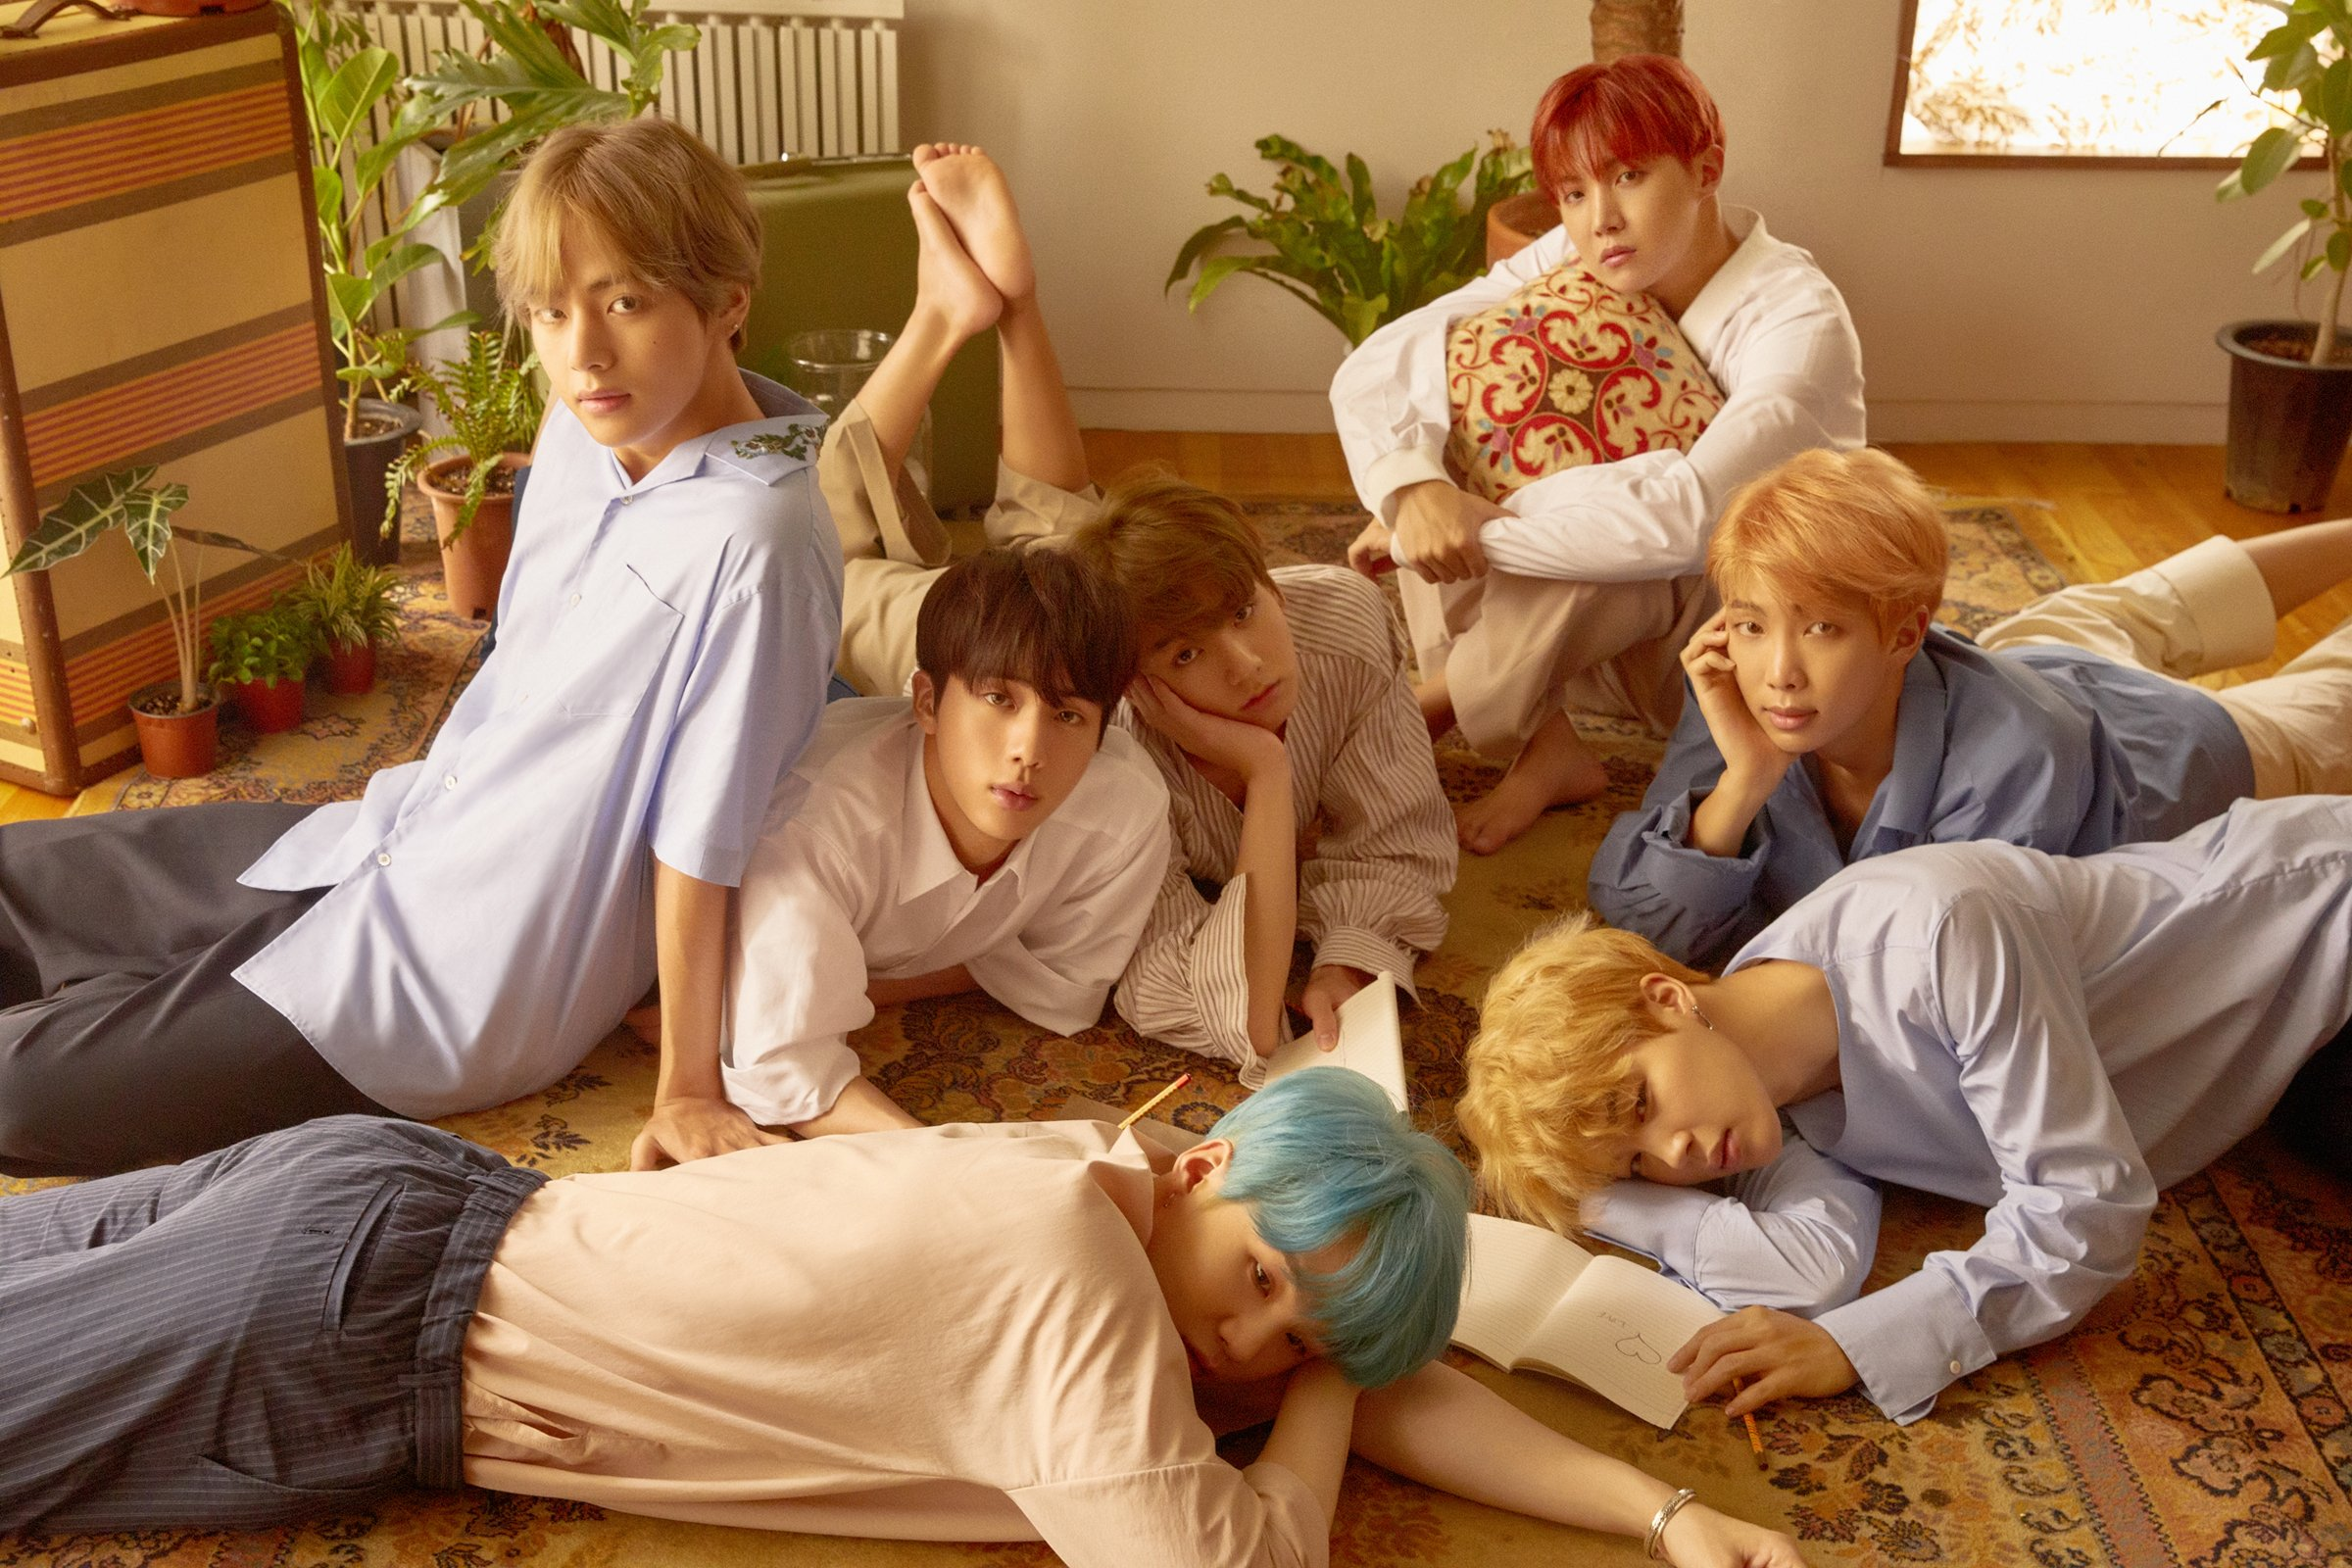 Picture Bts Love Yourself 承 Her Concept Photo L Version 170907